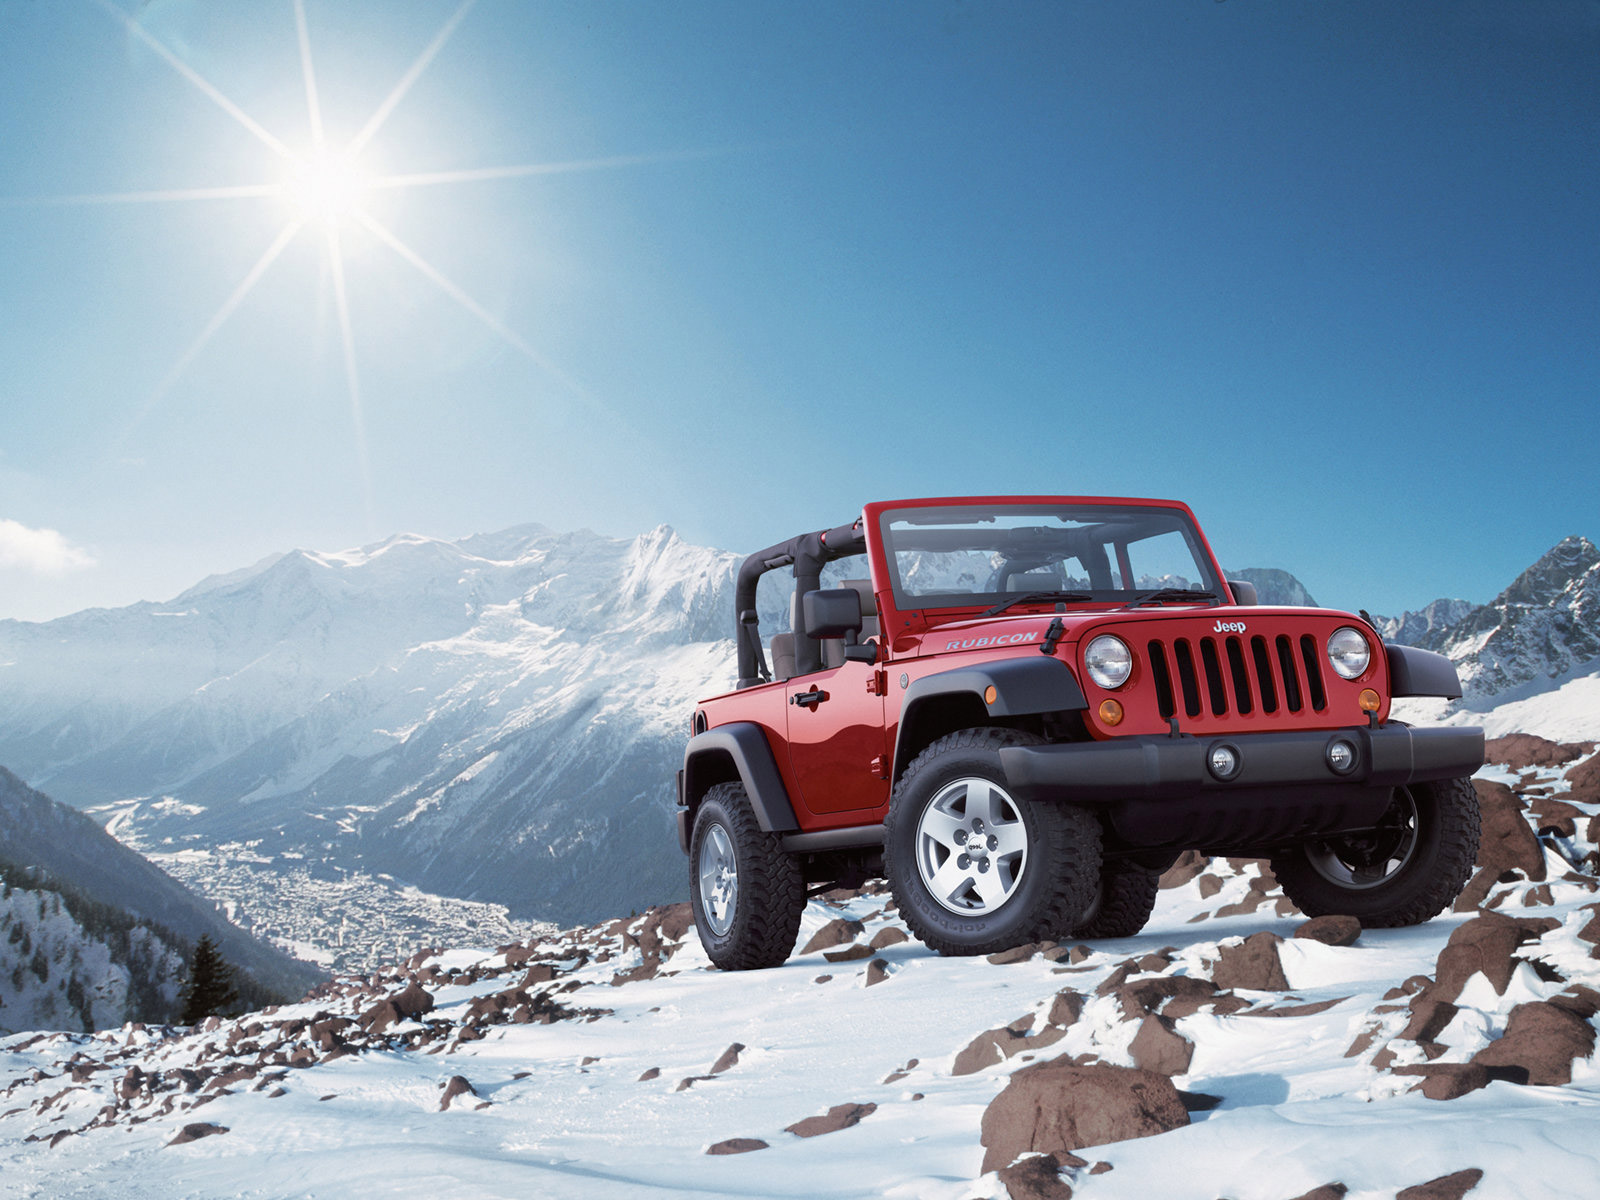 Hd wallpaper jeep - 29 Awesome Hd Jeep Wallpapers